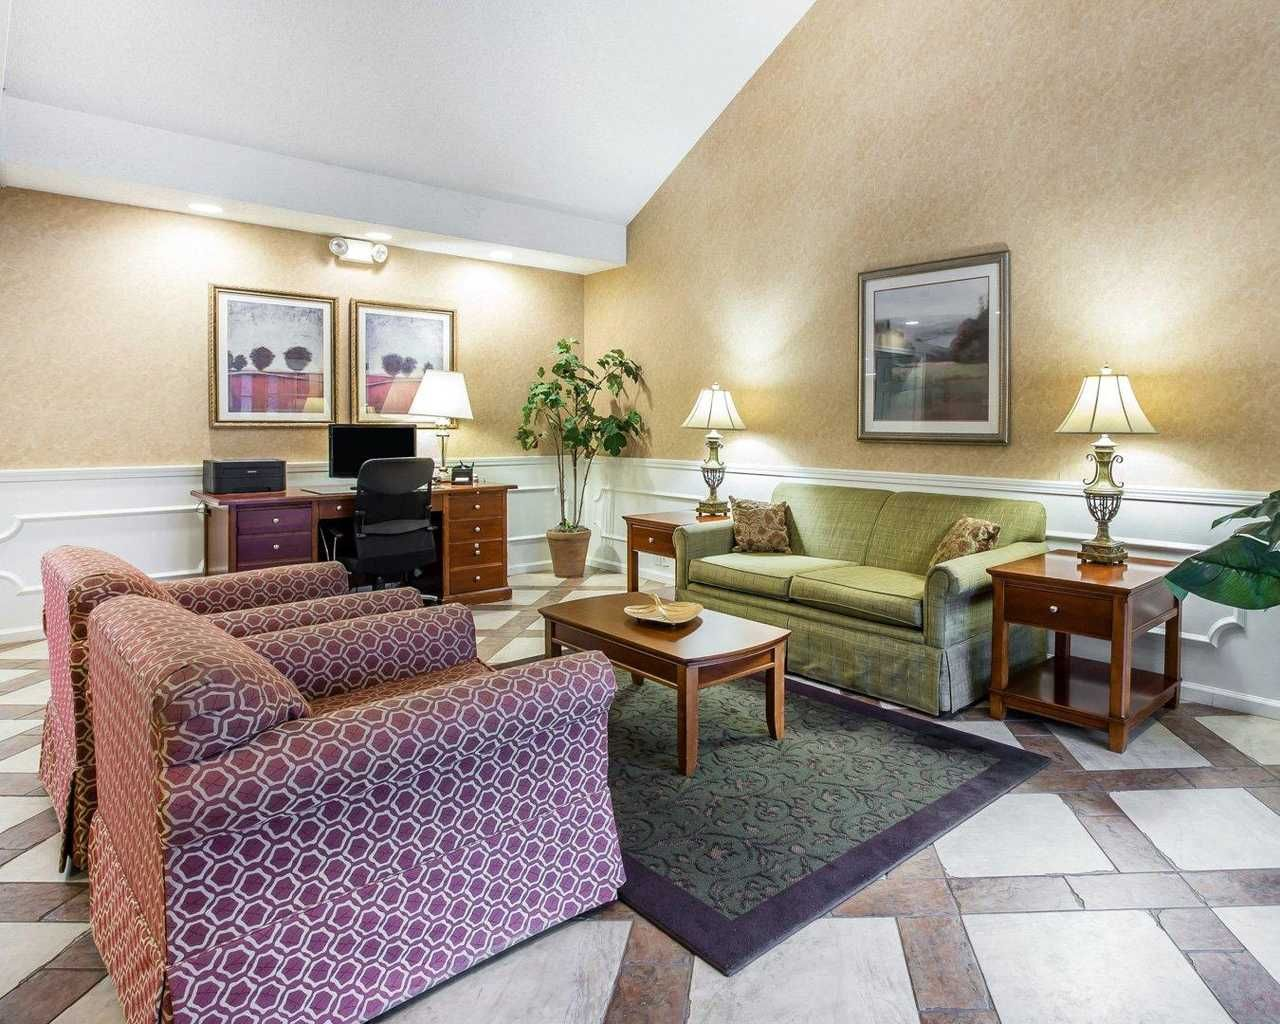 Quality Inn Carrollton is also a place you can rely on for